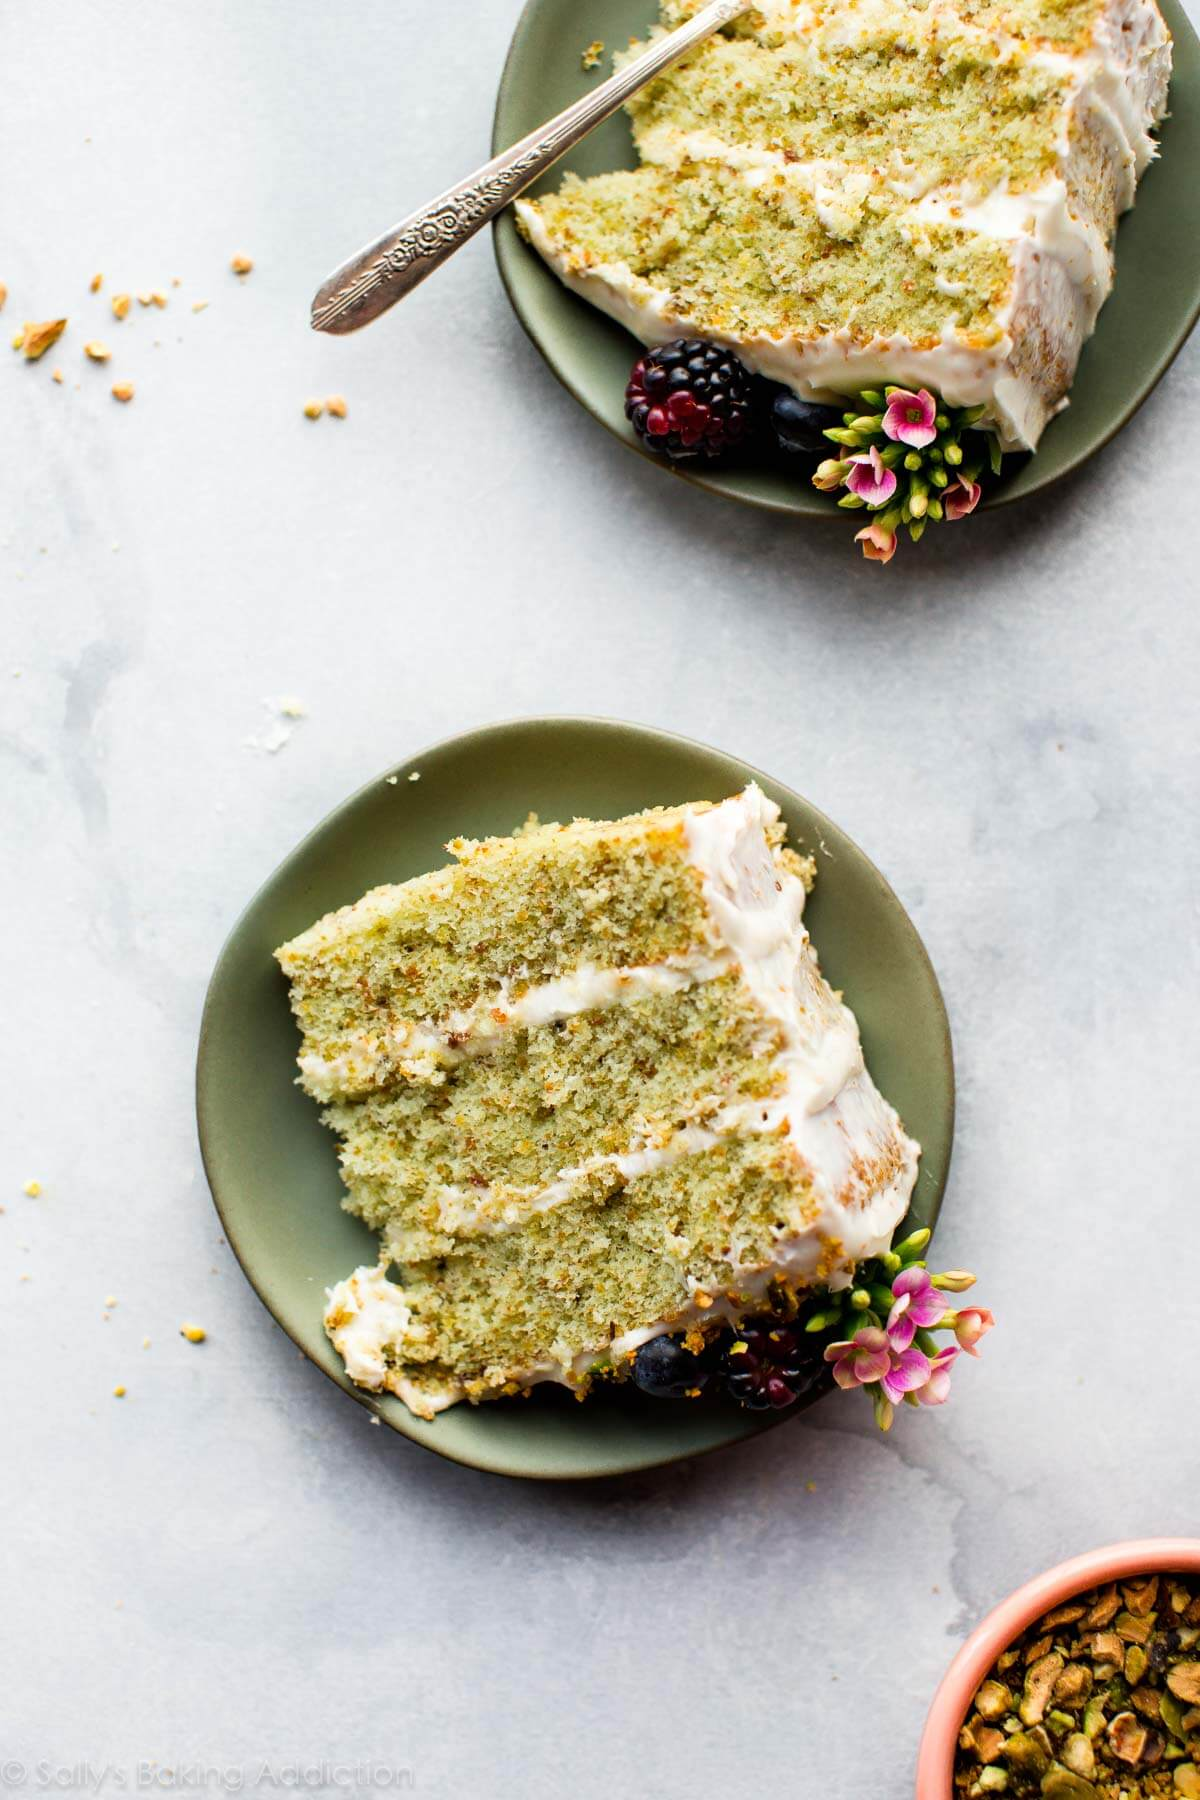 Pistachio cake from scratch with real pistachio and almond extract flavors! Nothing fake or artificial in this beautiful 3 layer pistachio cake. This rustic chic naked cake is adorned with silky cream cheese frosting! Recipe on sallysbakingaddiction.com